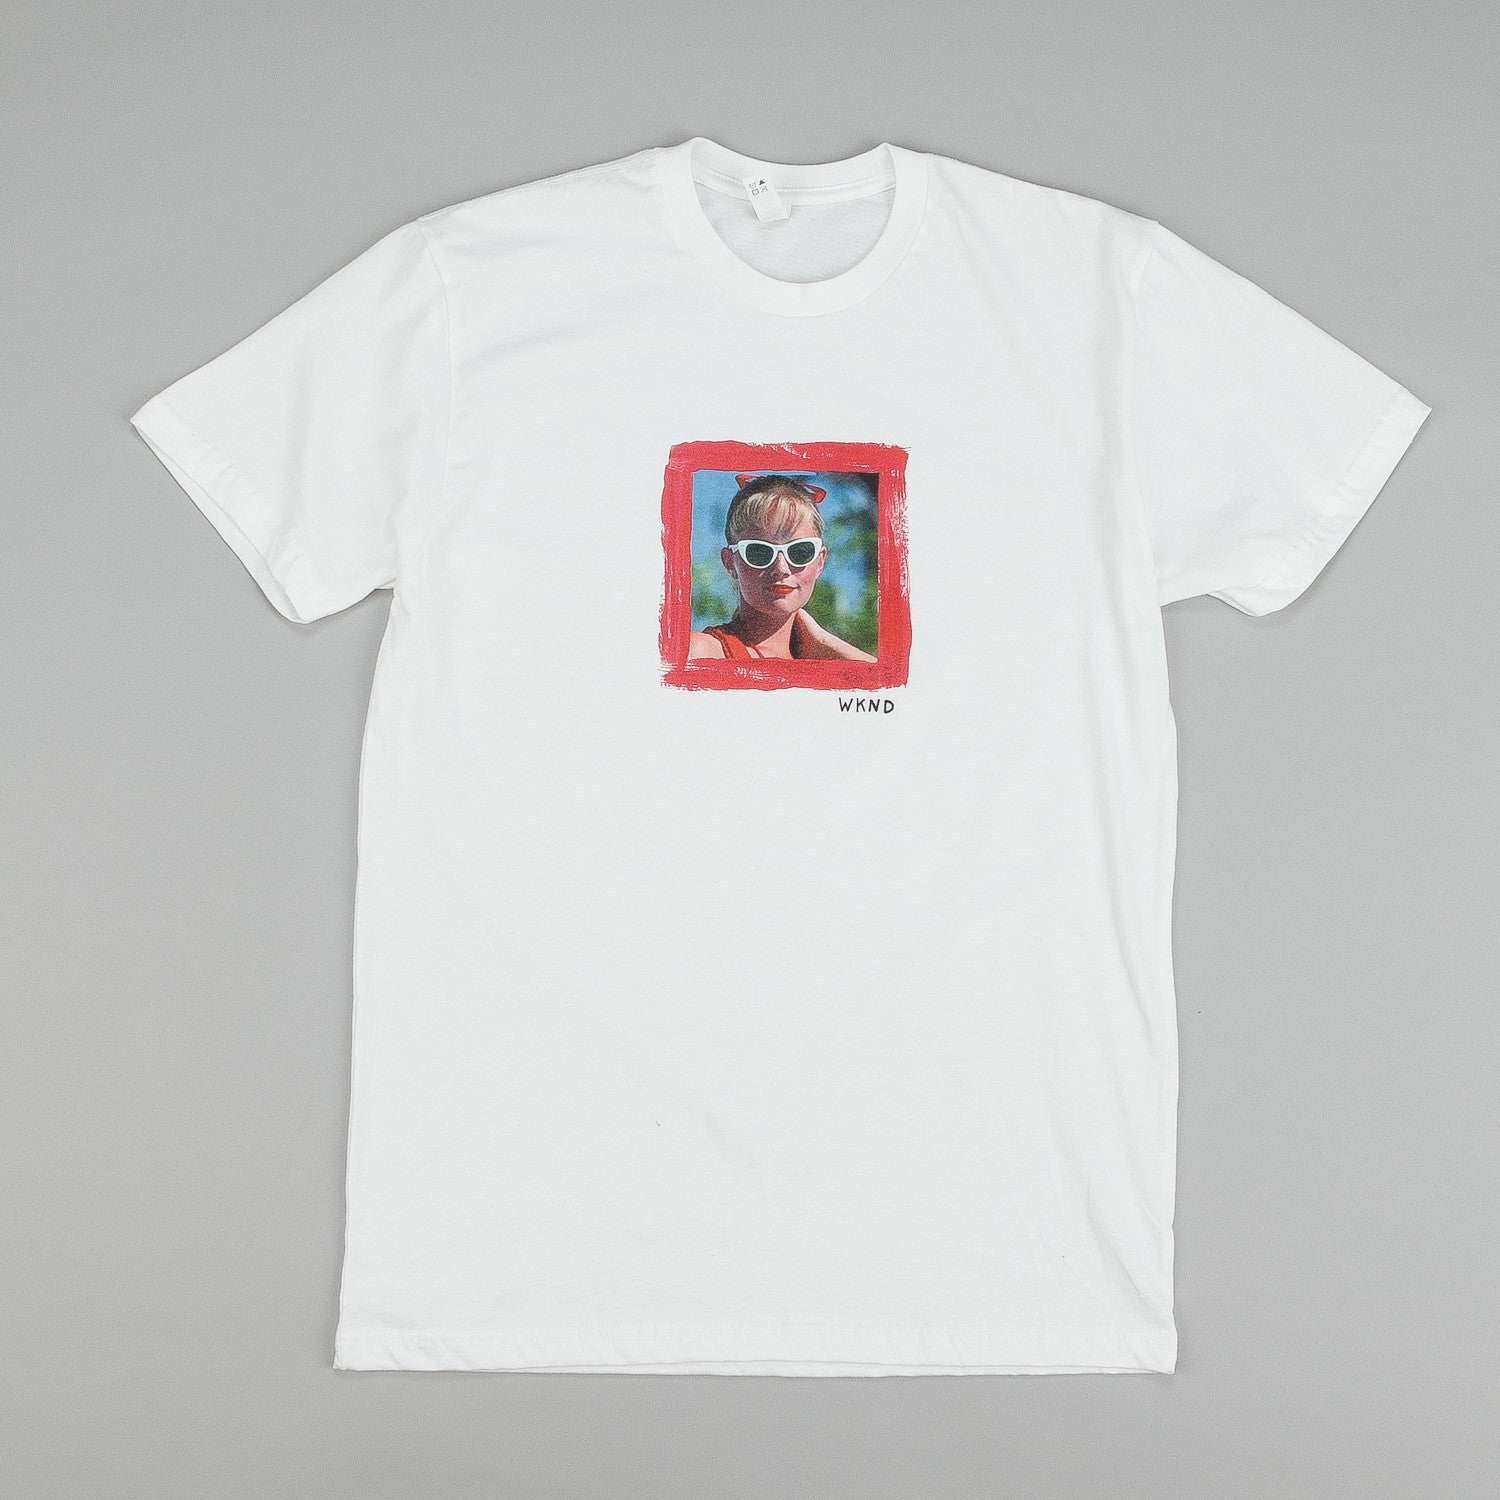 WKND Wendy Peffercorn T-Shirt White